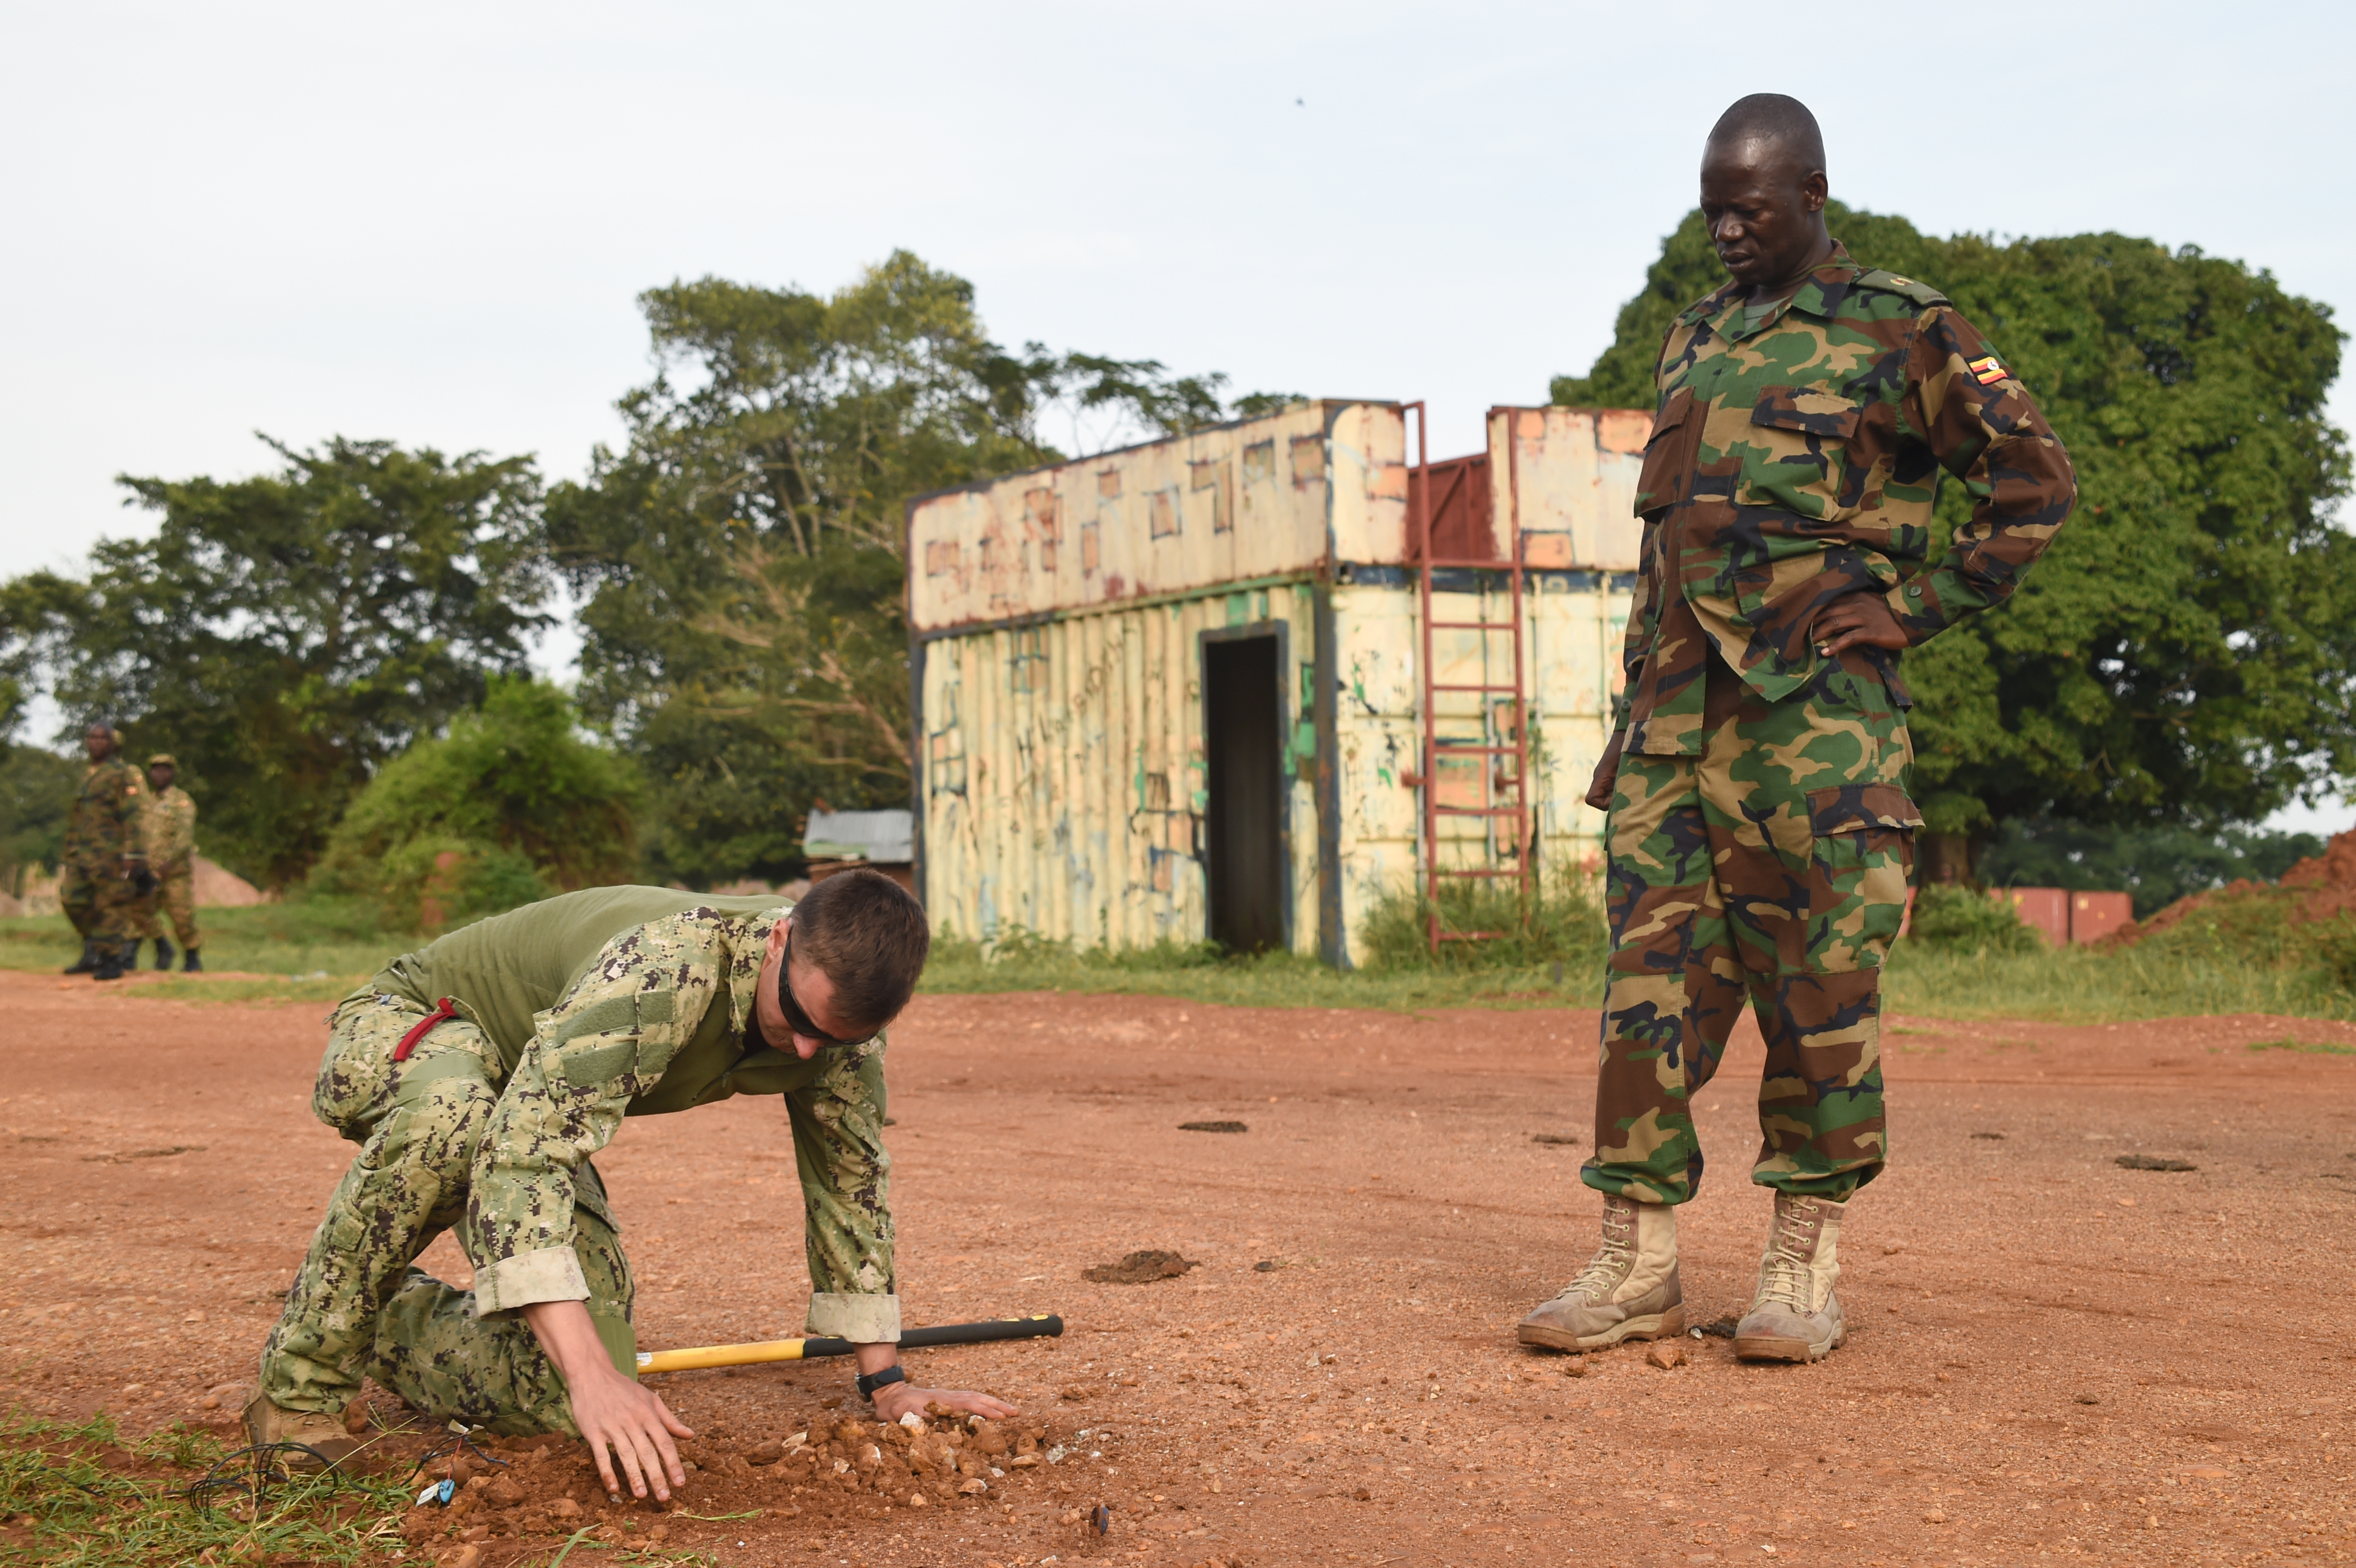 U.S. Navy Explosive Ordnance Disposal Technician 2nd Class Gary Lathrop, Combined Joint Task Force-Horn of Africa, Task Force Sparta, EOD Mobile Unit 8, places a simulated improvised-explosive-device (IED) as a Uganda People's Defense Force (UPDF) cadre observes during counter-IED training at Camp Singo, Uganda, March 6, 2017.  The training gave UPDF members a chance to locate and clear IEDs in and around buildings and along the road. (U.S. Air National Guard photo by Staff Sgt. Penny Snoozy)